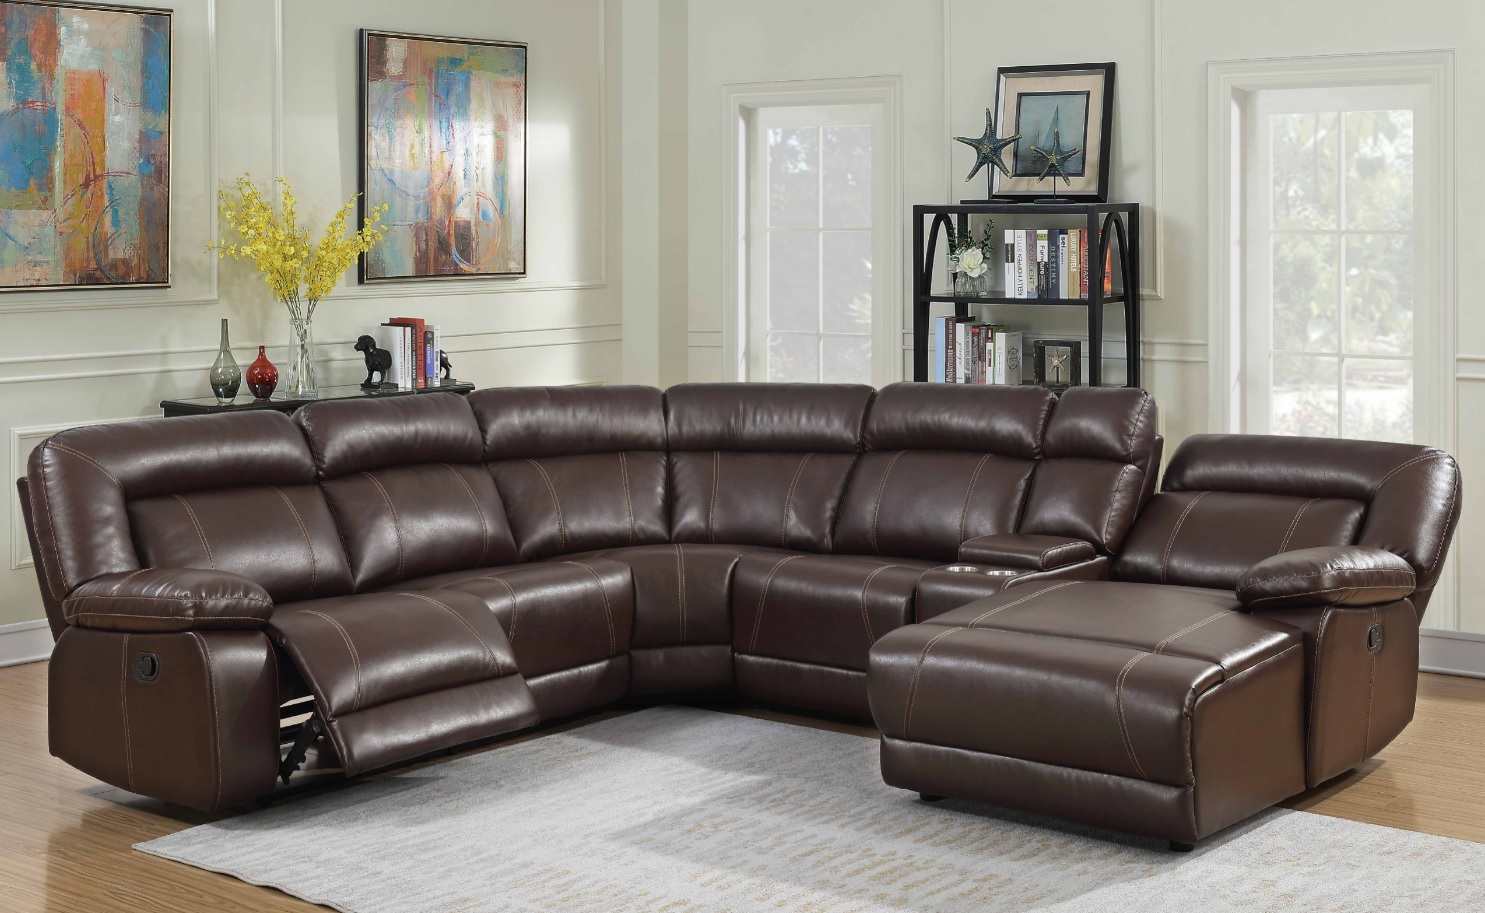 sectional w 2 recliners chaise storage cup holders 8002mg